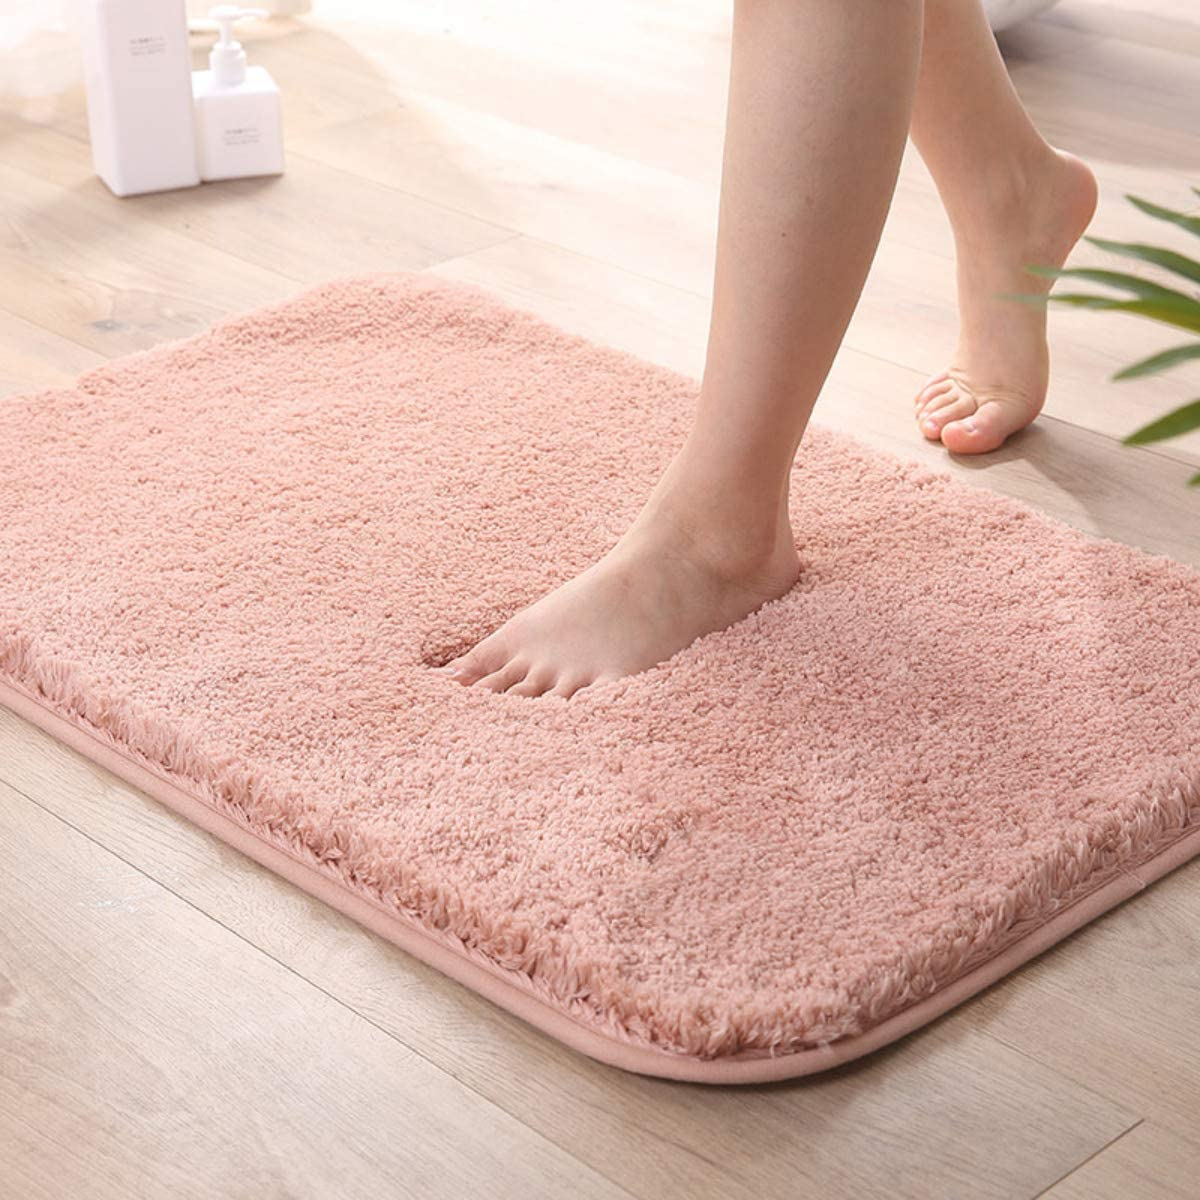 Fufengz Bathroom Carpet Mats, Super Soft and Absorbent Bathroom Carpets, Machine Wash/Dry Clothes, for Bathtubs, Showers and Bathrooms (32